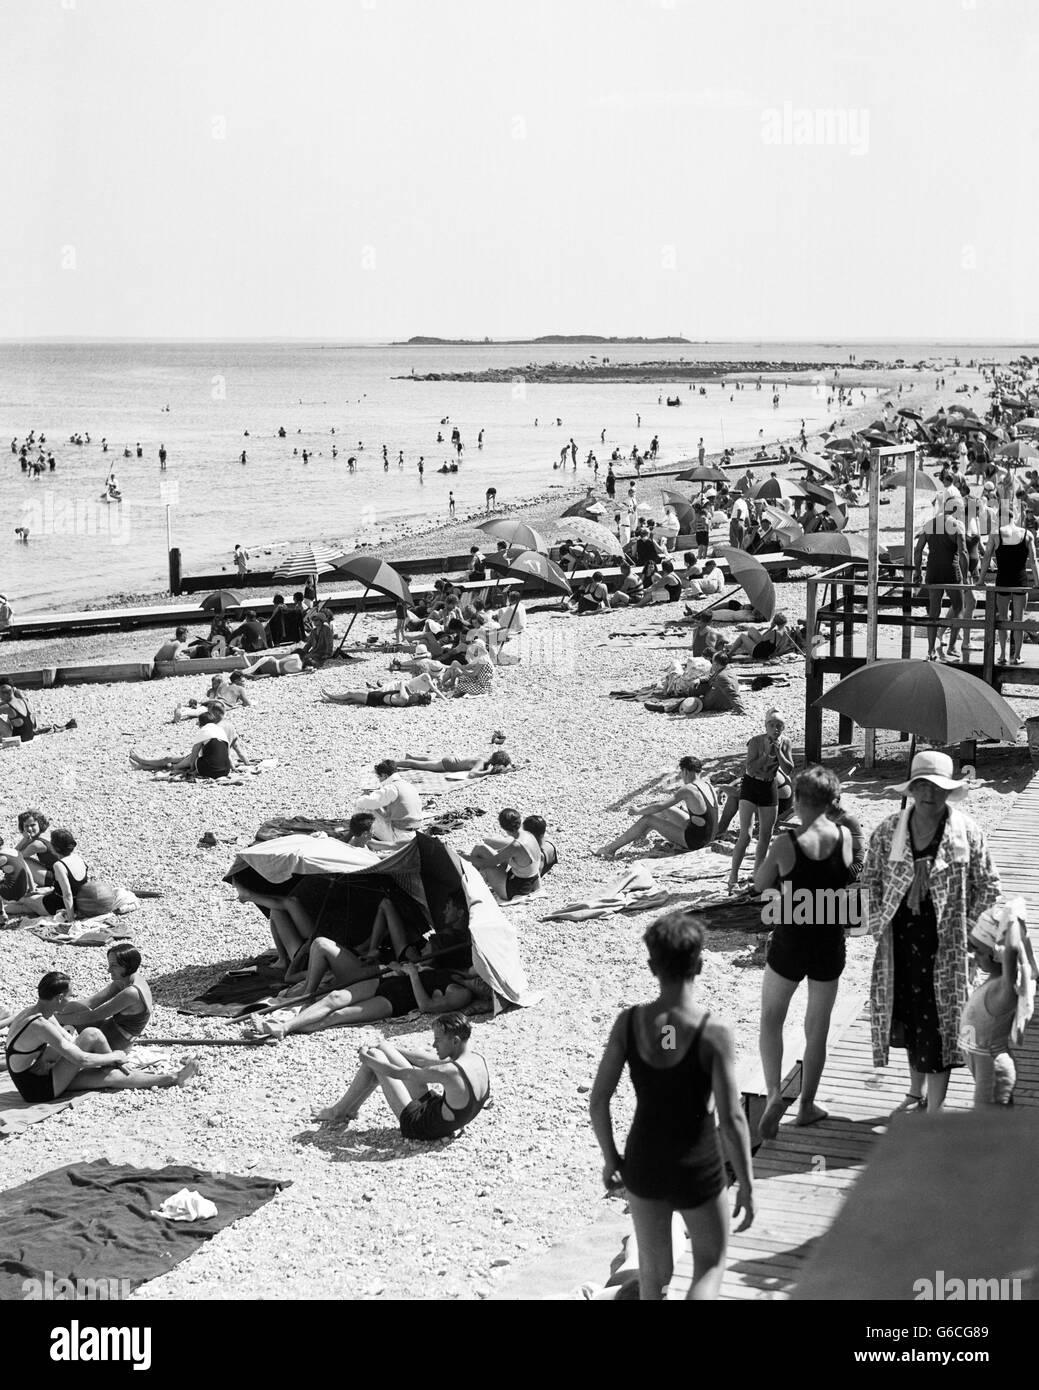 1920s 1930s SUMMER CROWD ON PUBLIC COMPO BEACH IN WESTPORT FAIRFIELD COUNTY CONNECTICUT USA - Stock Image